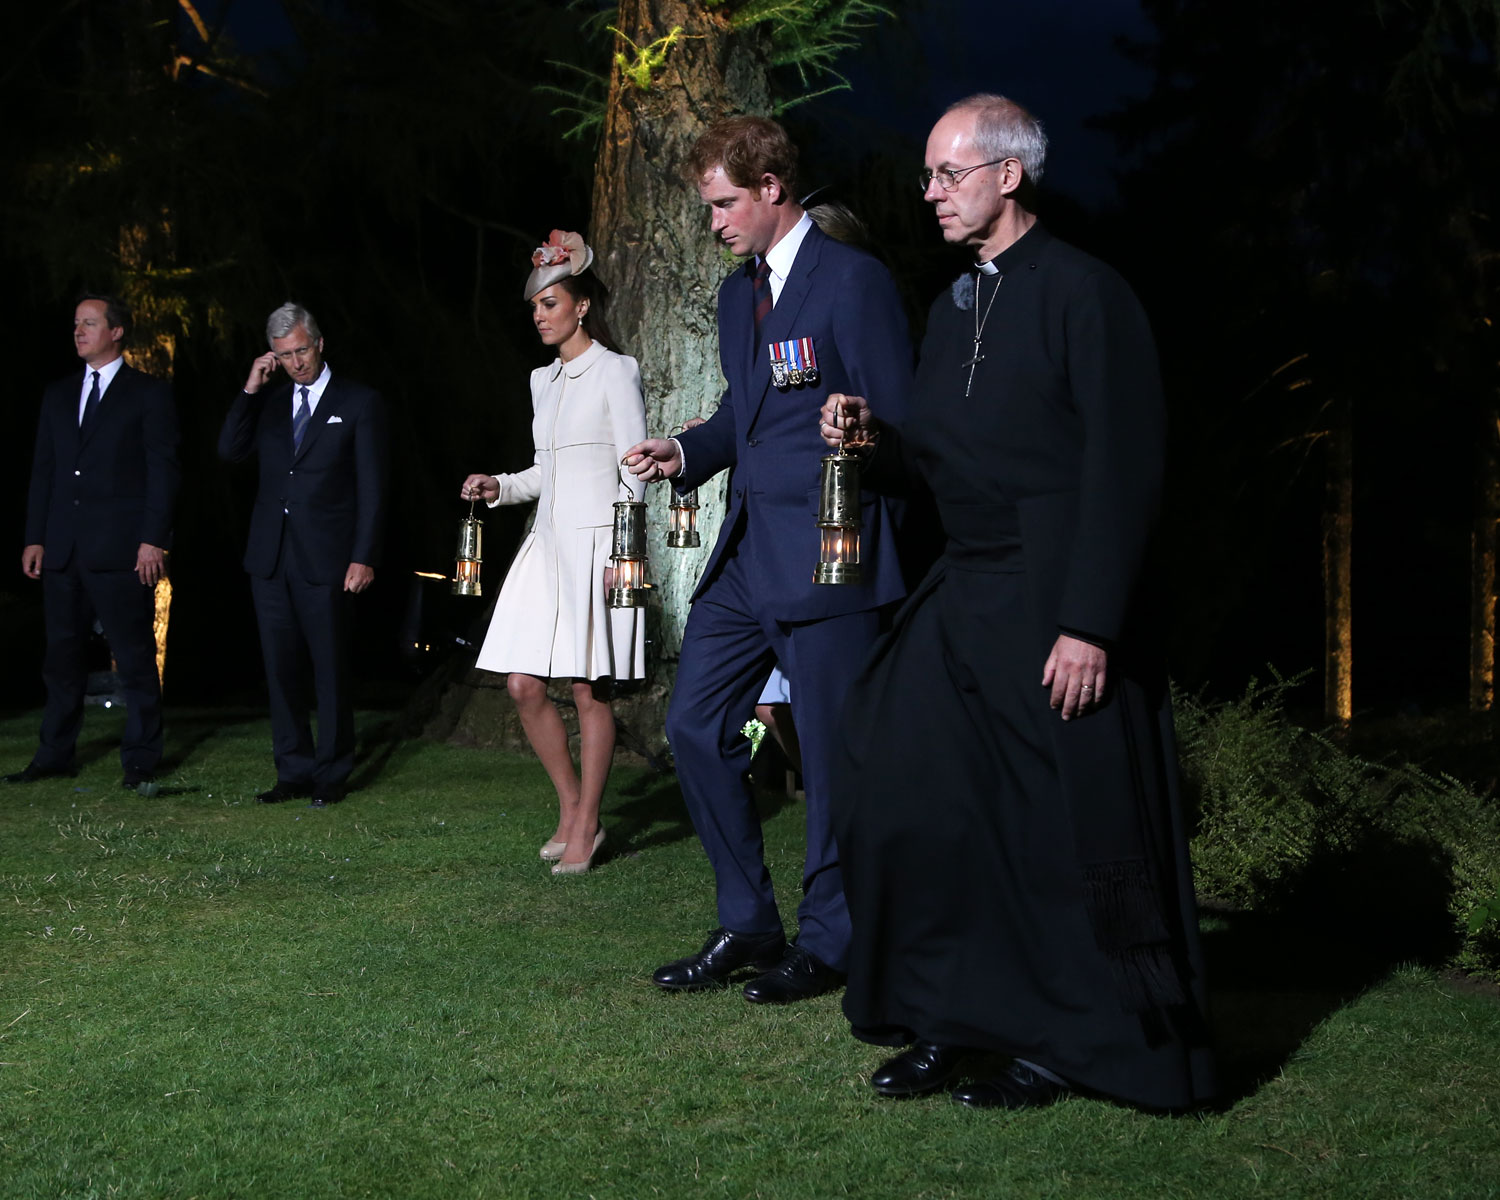 Prince Harry Wedding.Meghan Markle And Prince Harry S Wedding Officiant Speaks Out